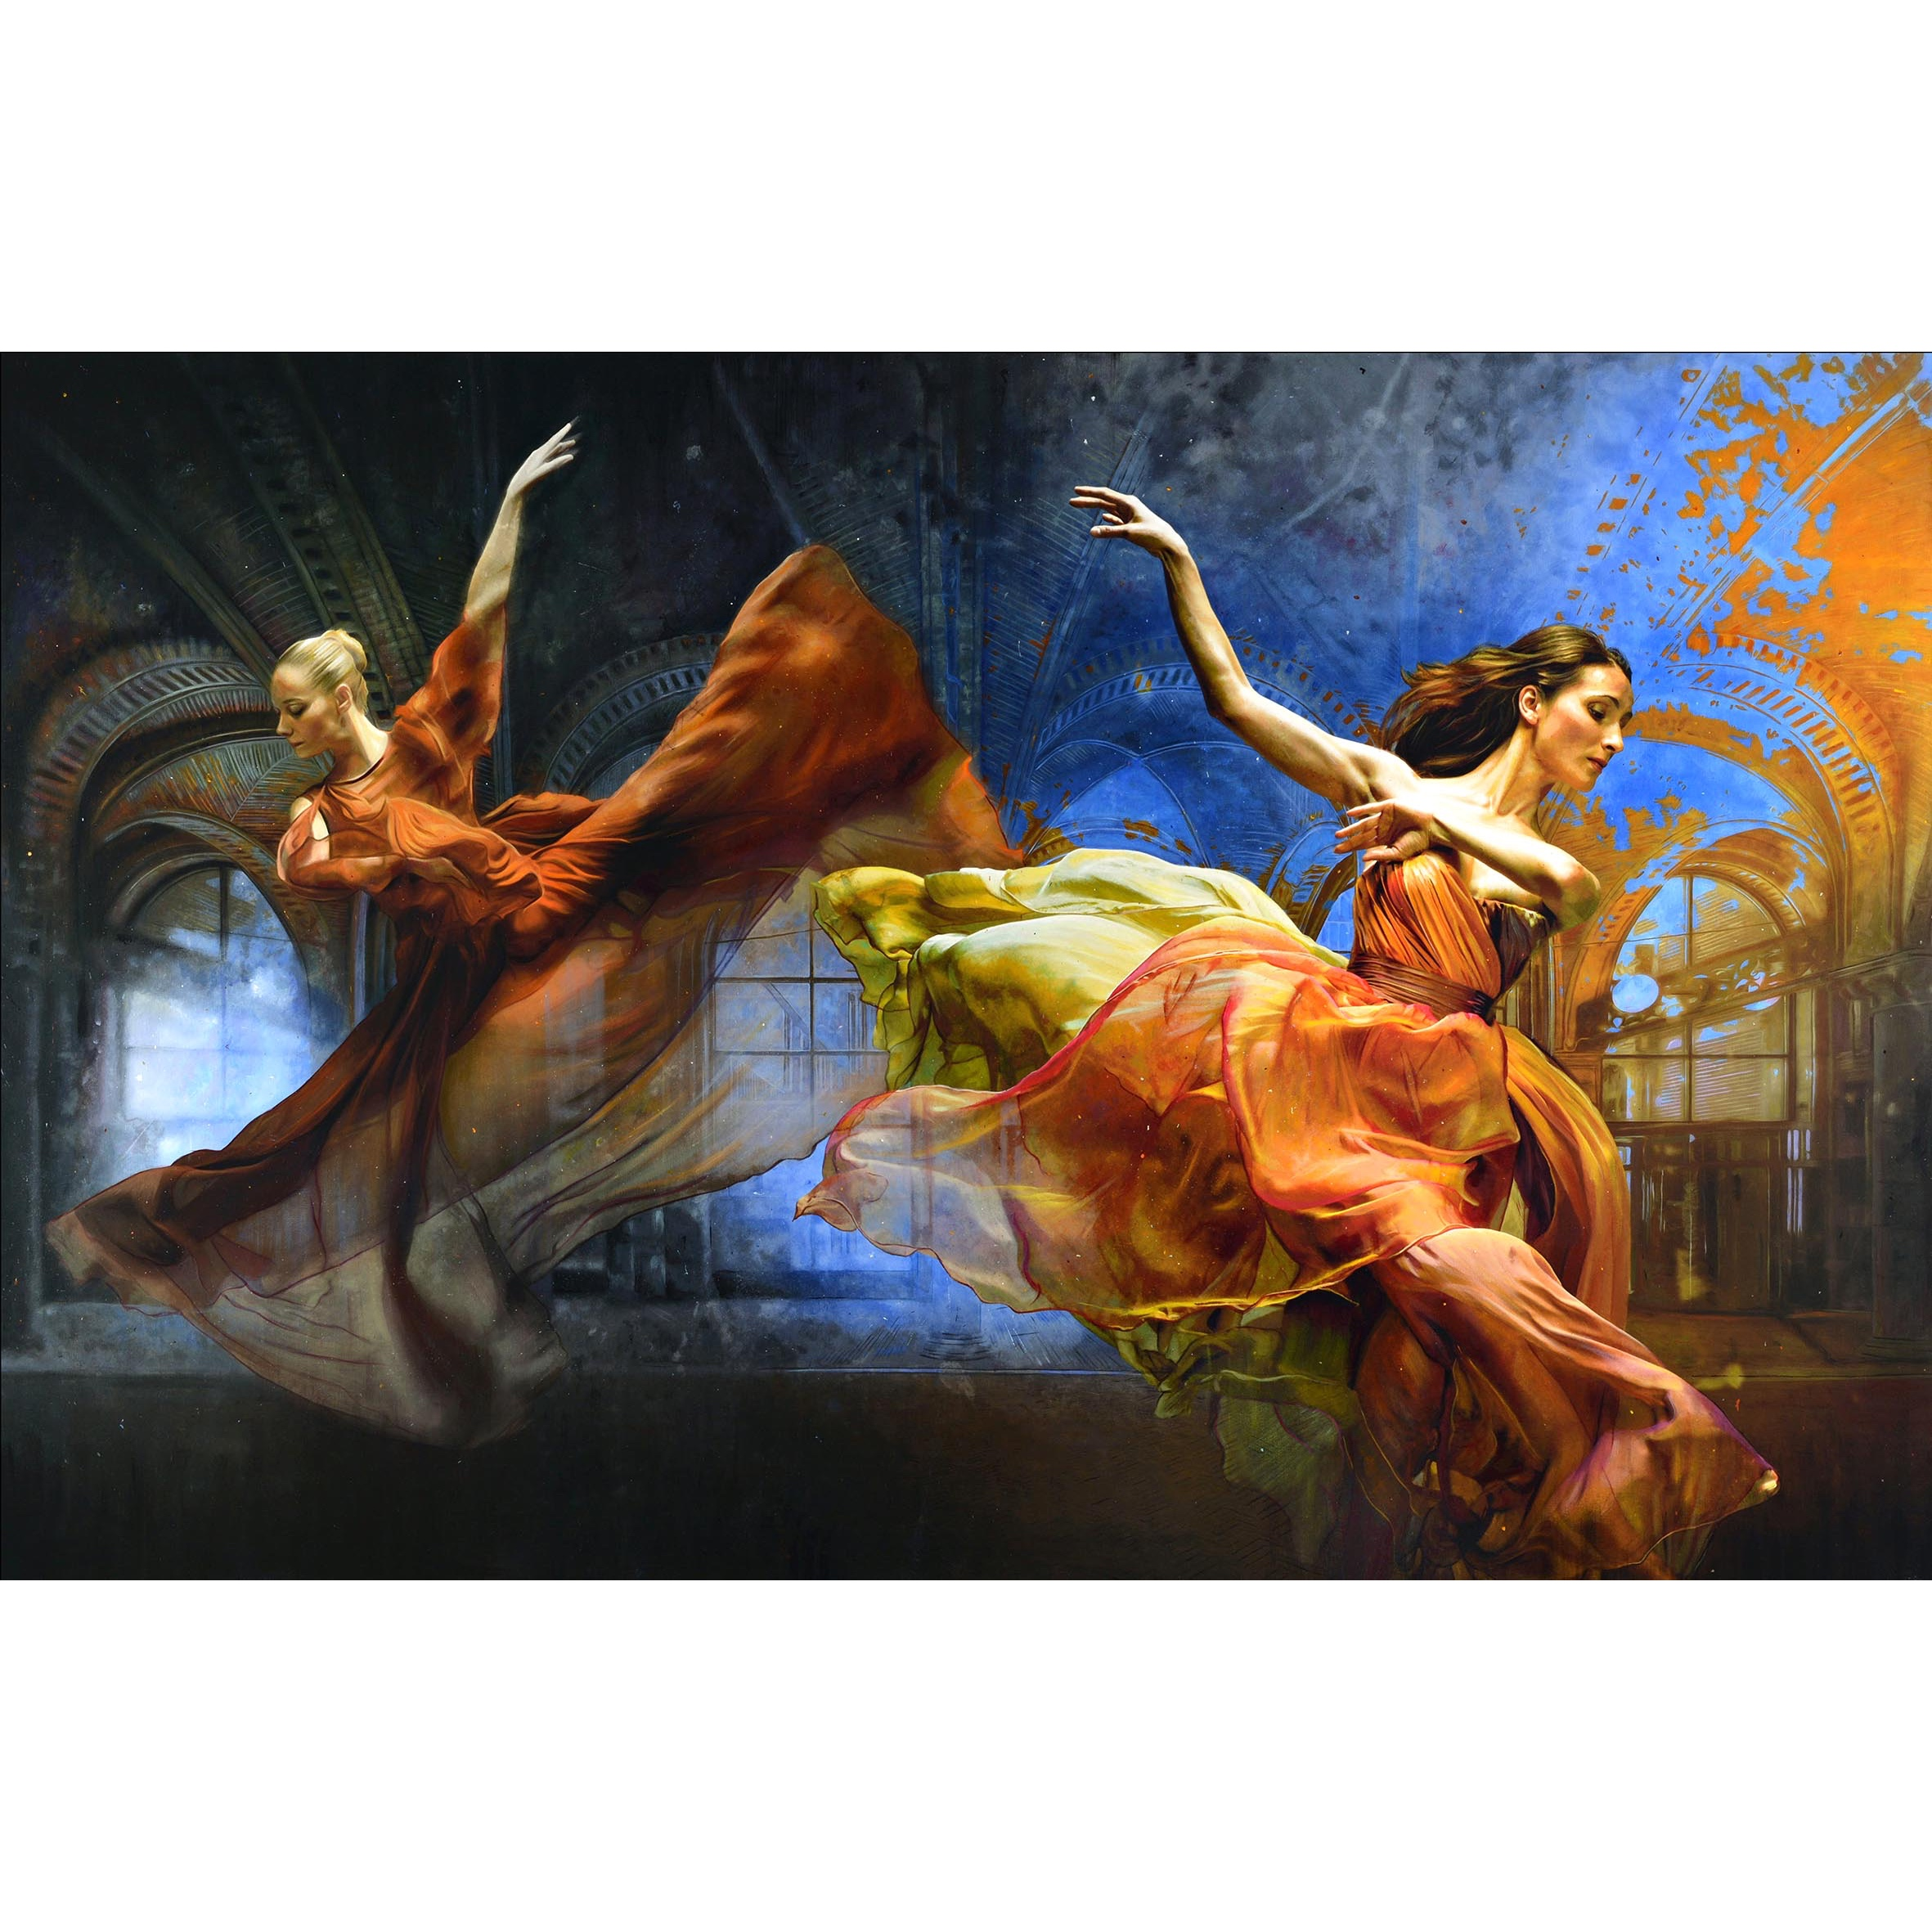 Tos Kostermans Mixed Media 'Muses of dance and art'